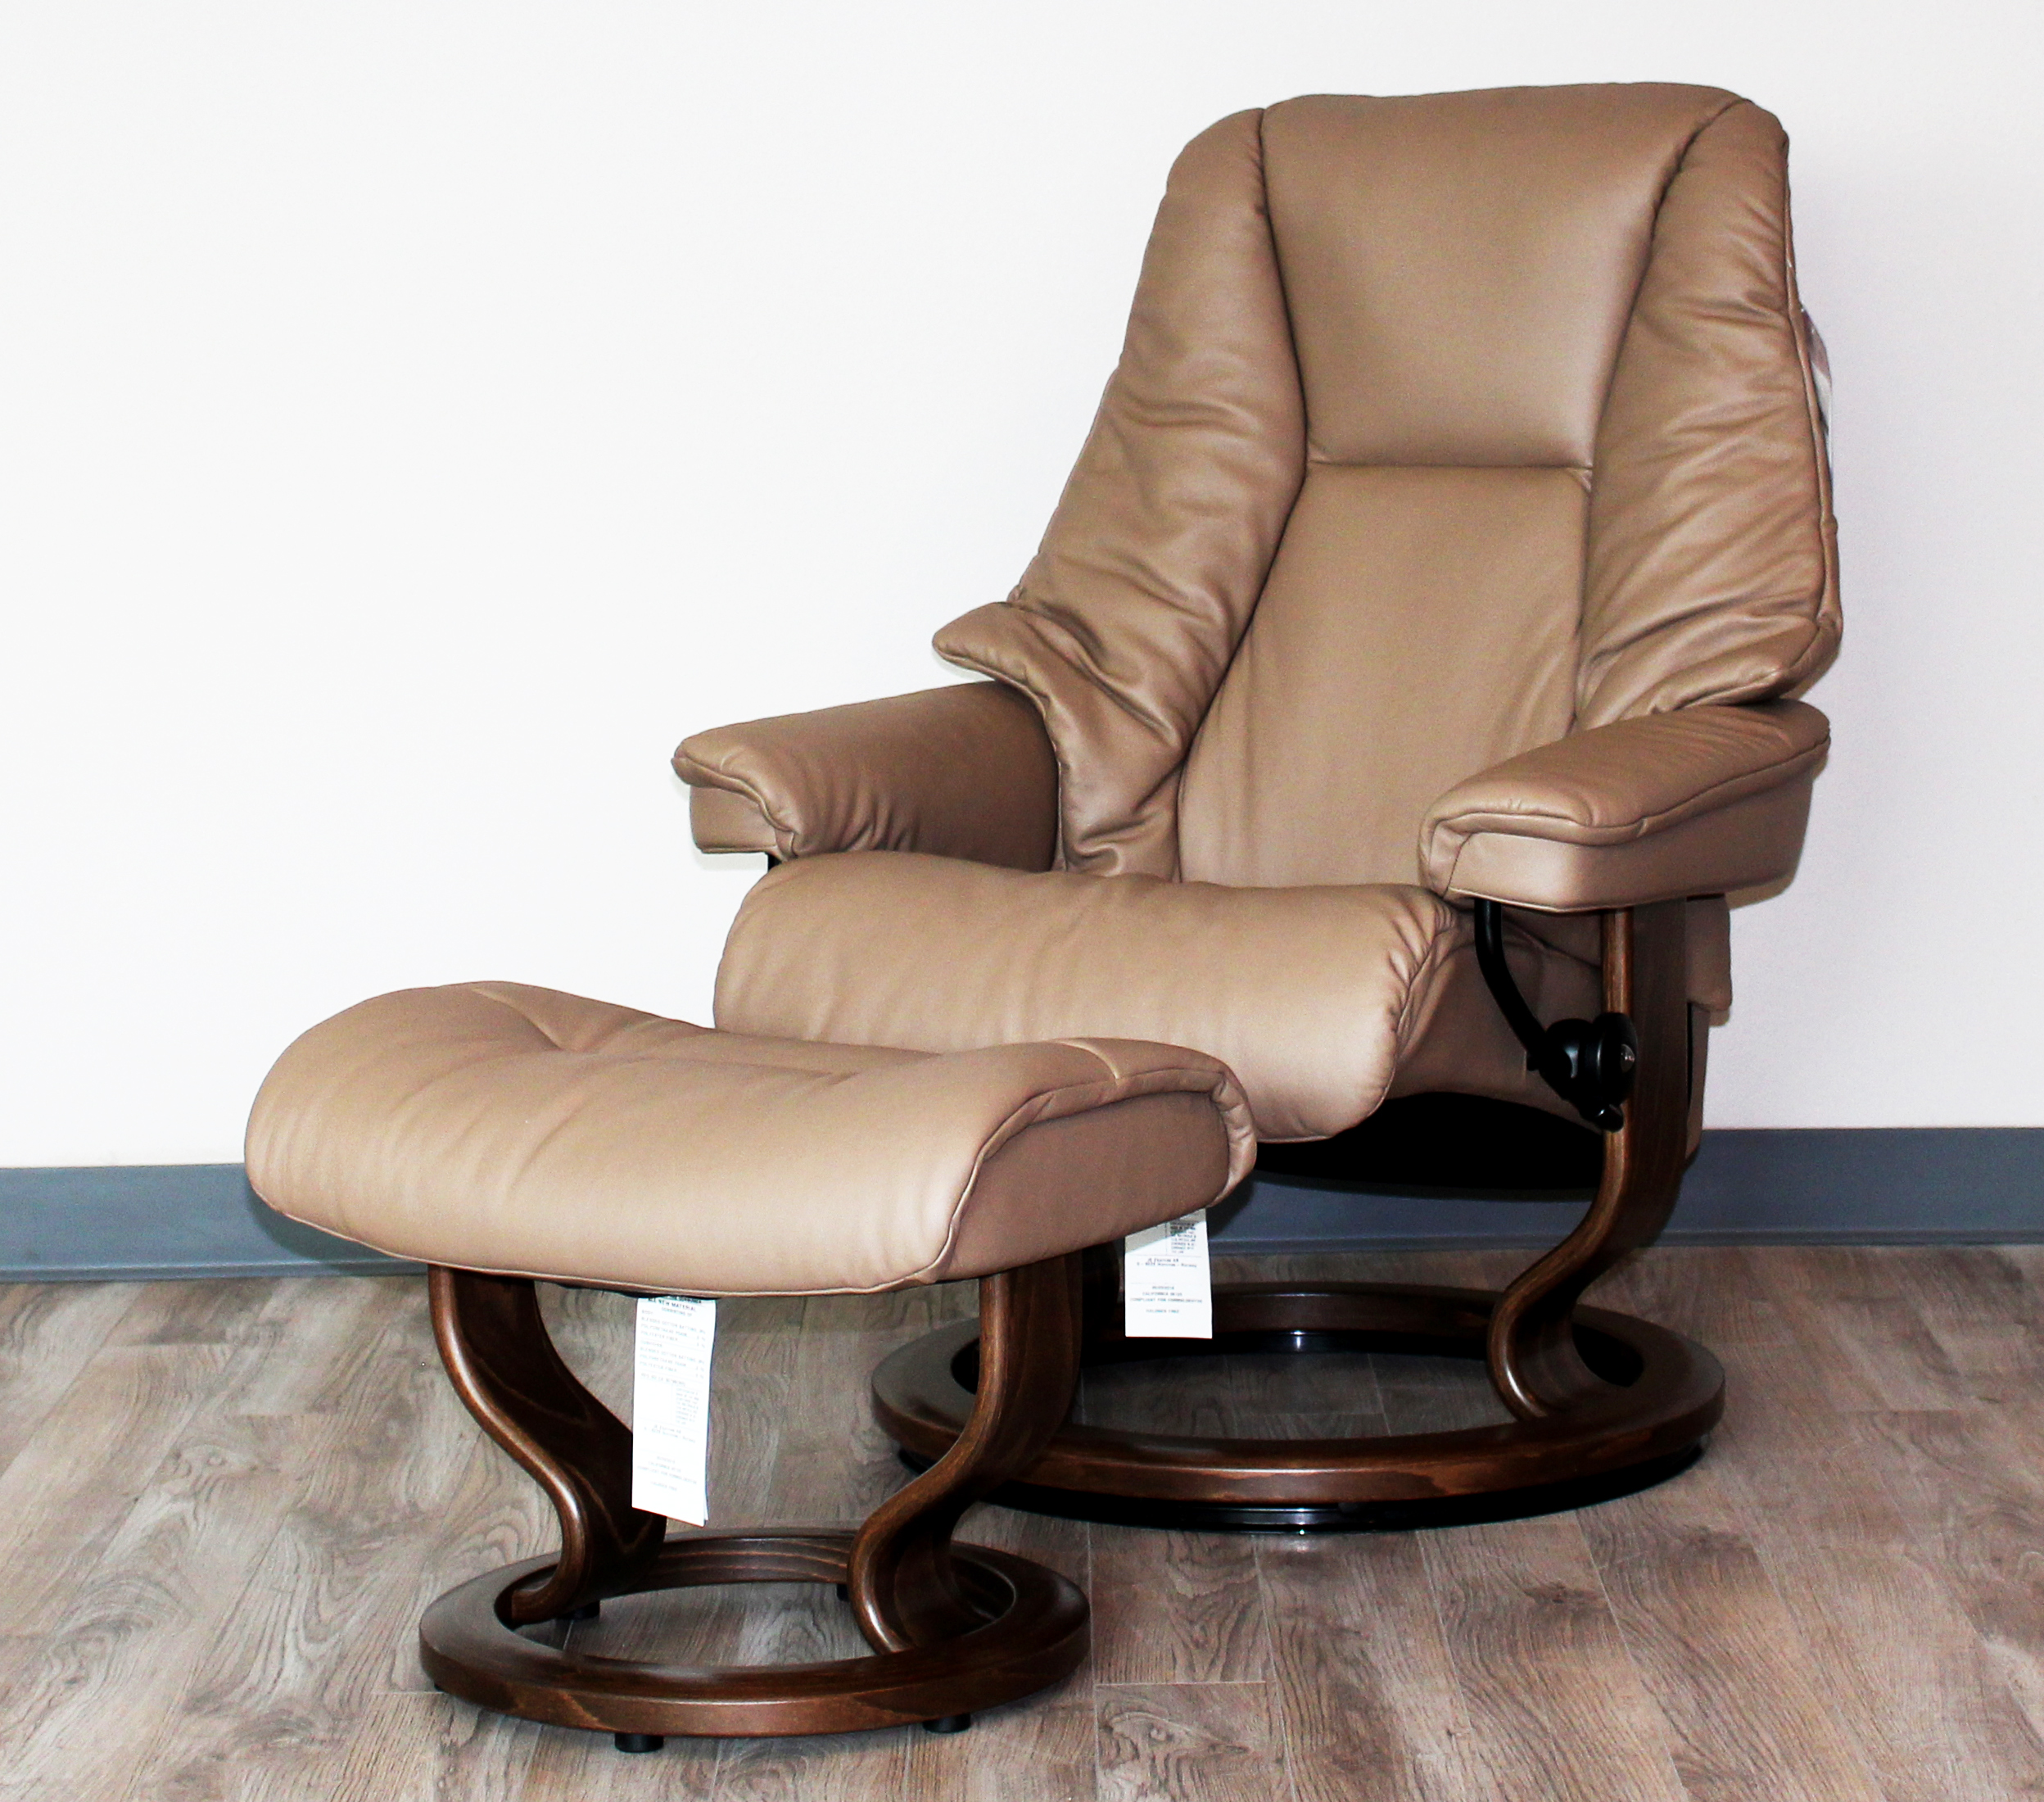 leather today hawthorne overstock glider shipping garden home knight free pu by christopher recliner chair product